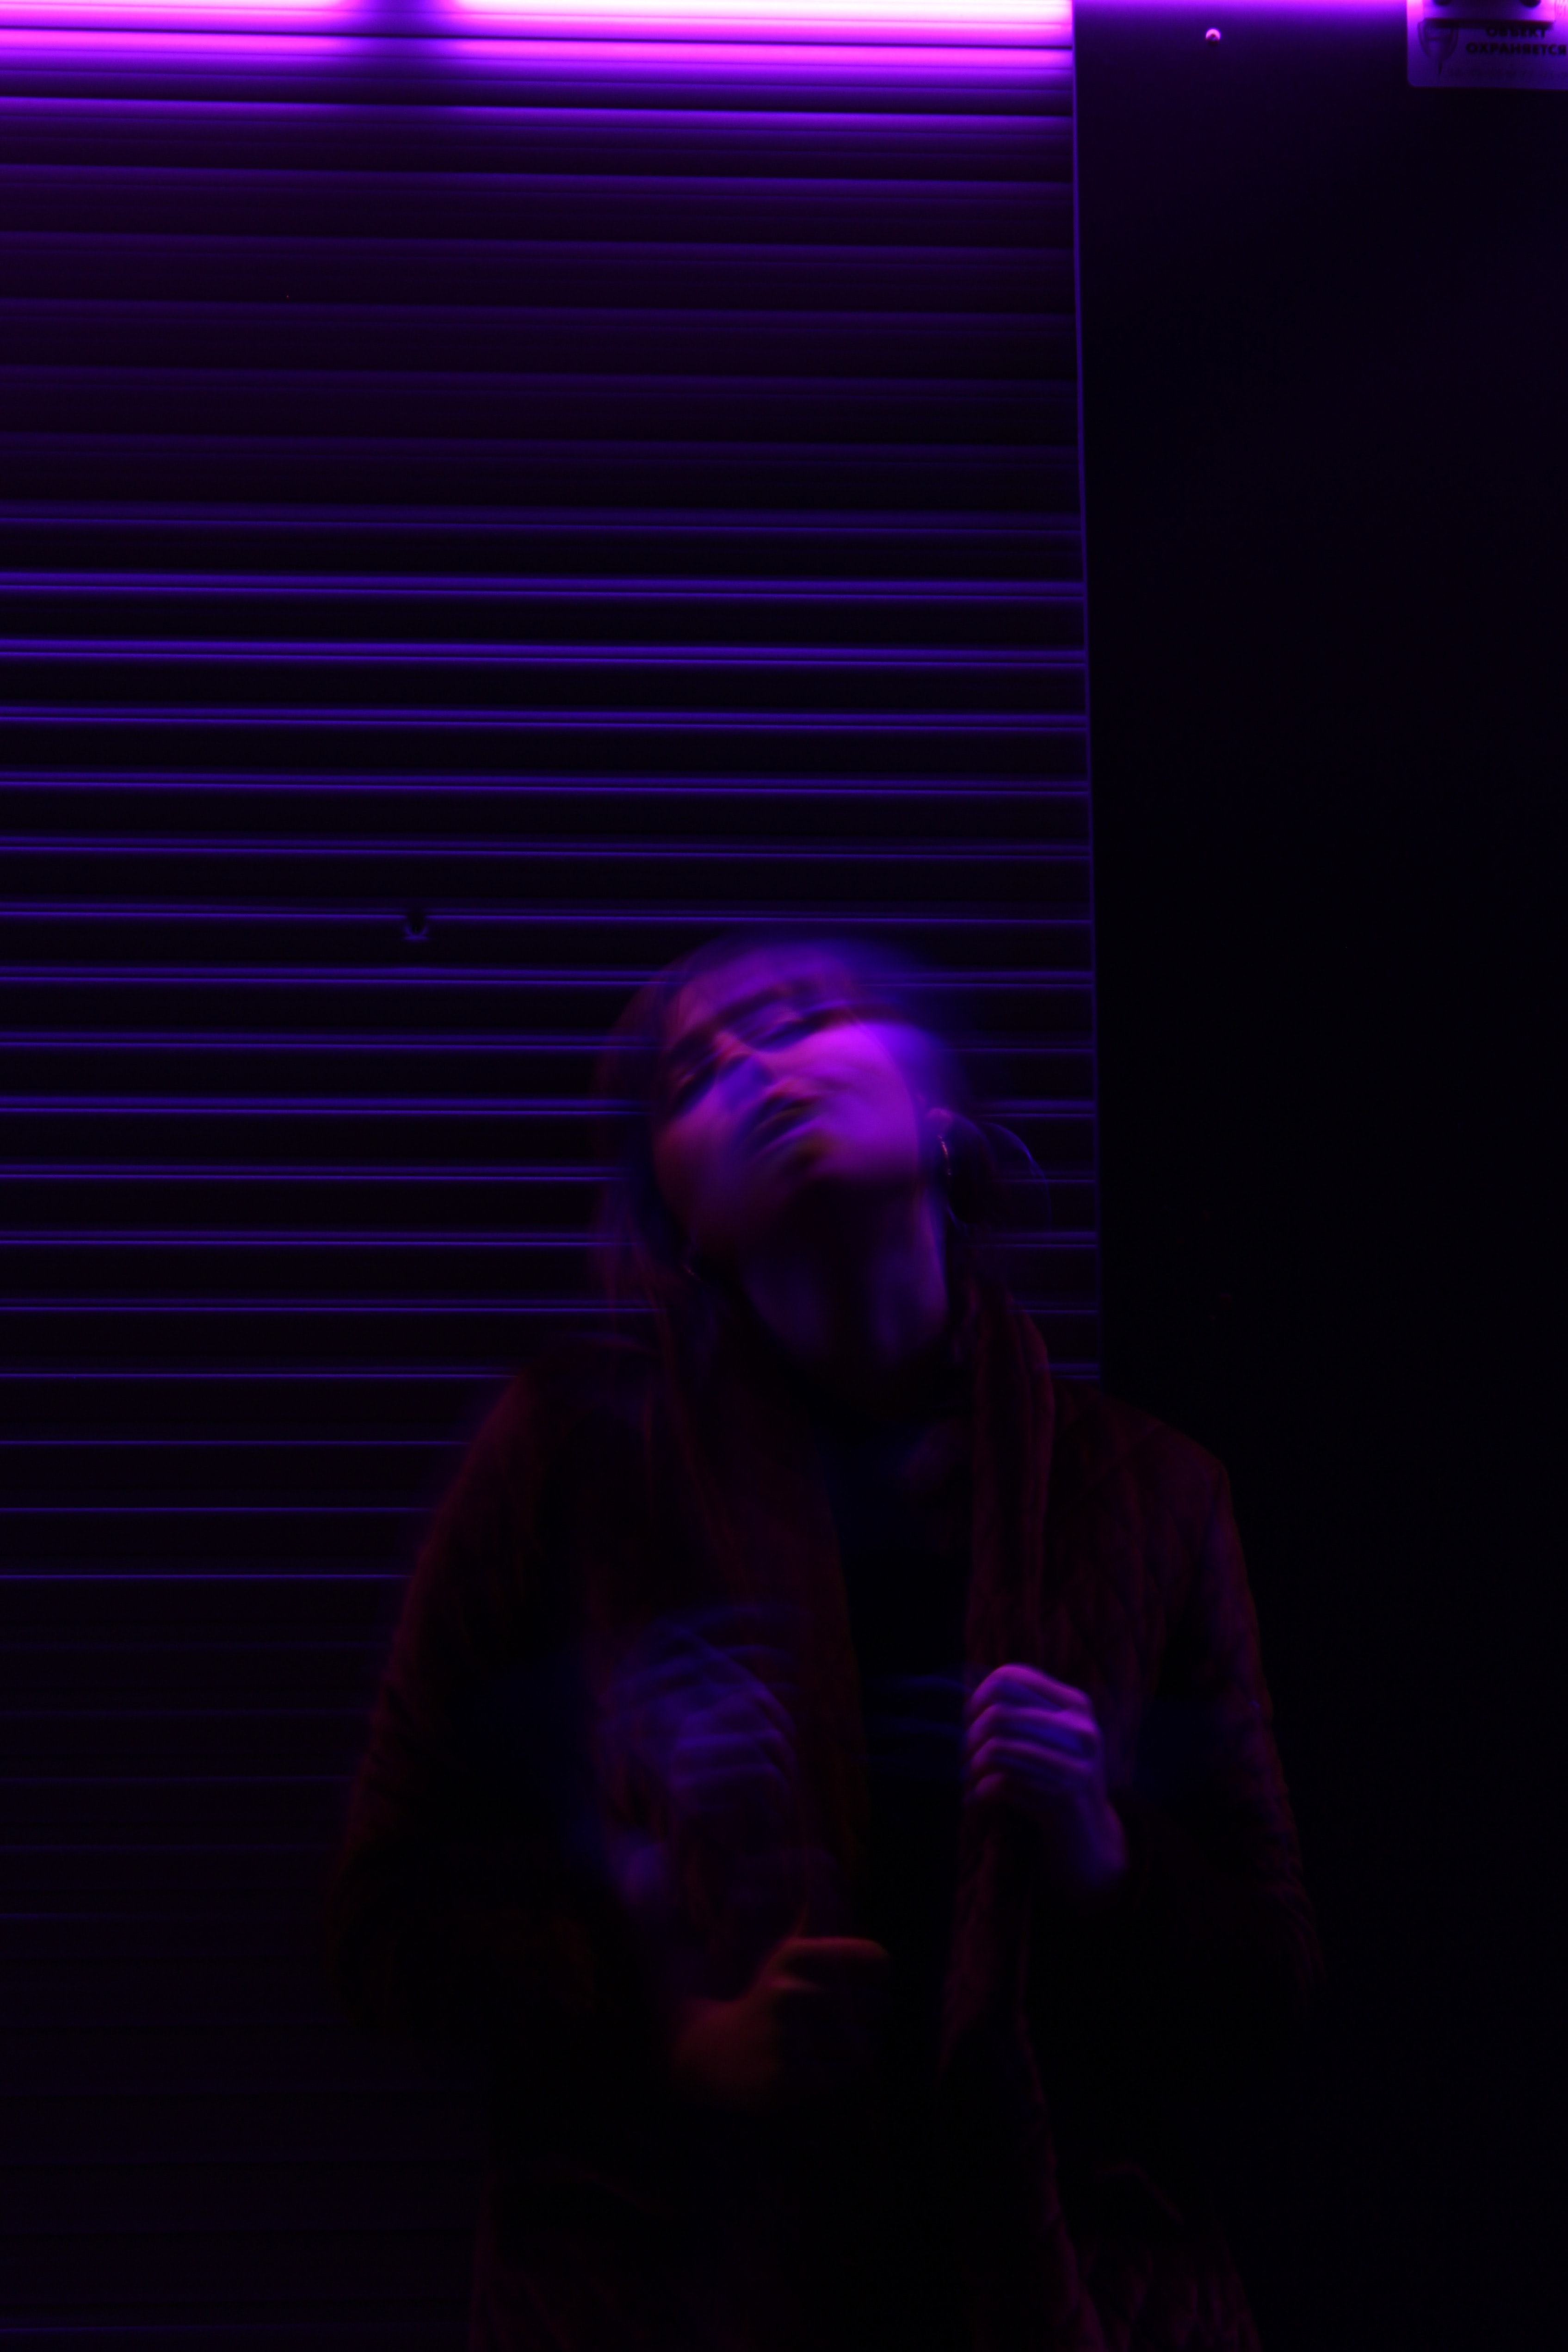 A motion blur shot of a young woman under purple lighting in Kaliningrad.